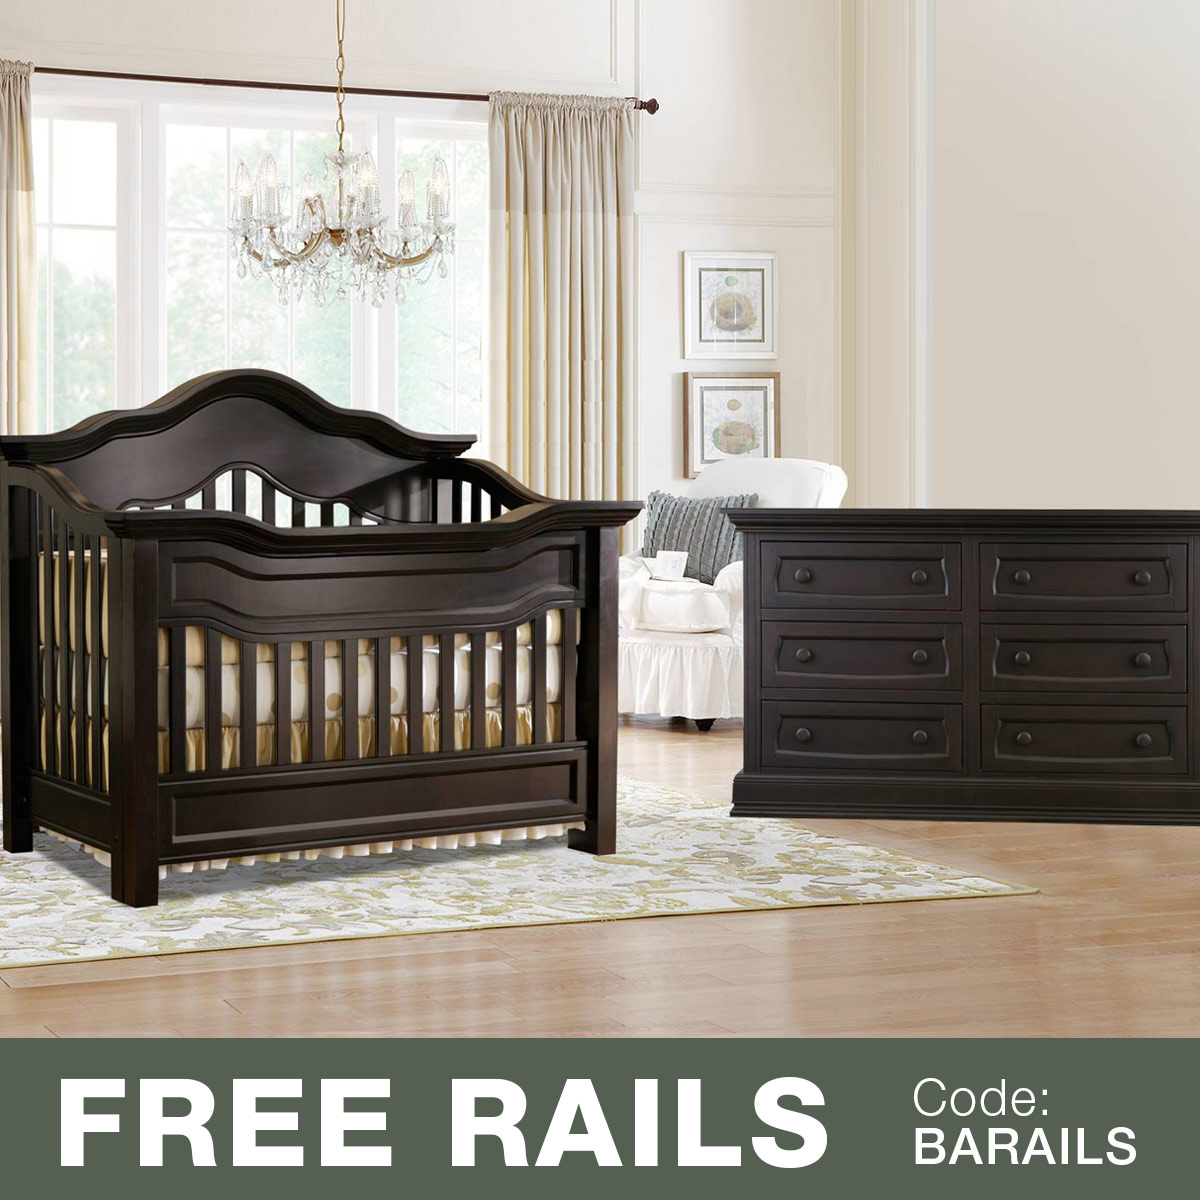 Baby Appleseed 2 Piece Nursery Set   Millbury 3 In 1 Convertible Crib And  Davenport Double Dresser In Slate FREE SHIPPING